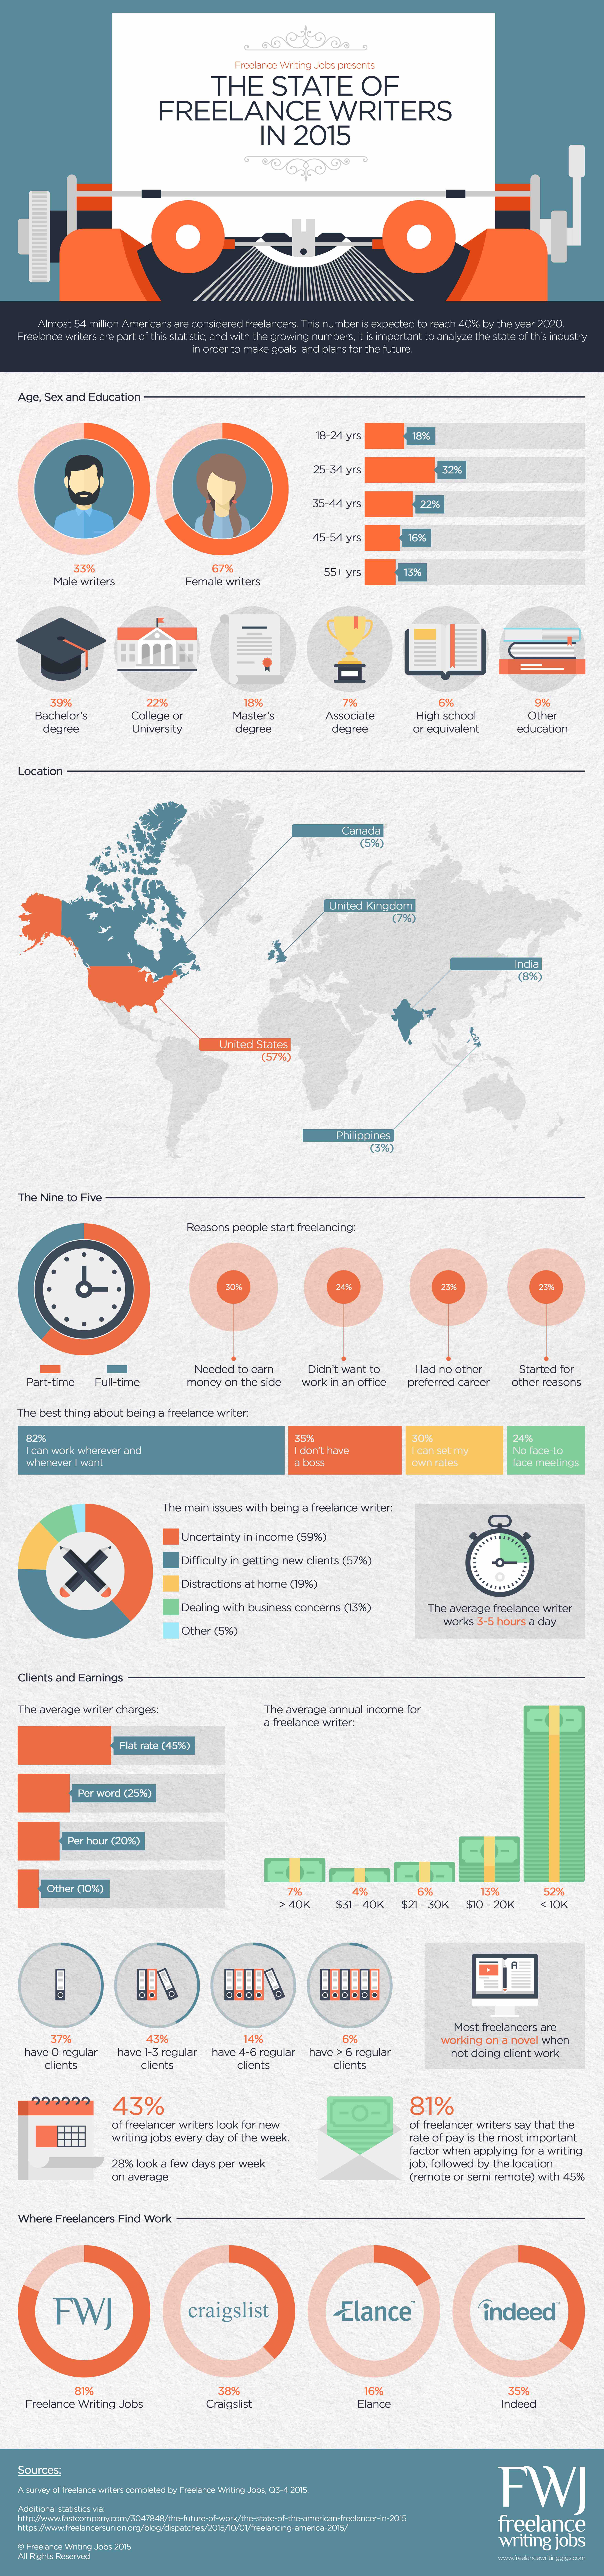 lance writing statistics infographic   lance writing statistics 2015 infographic